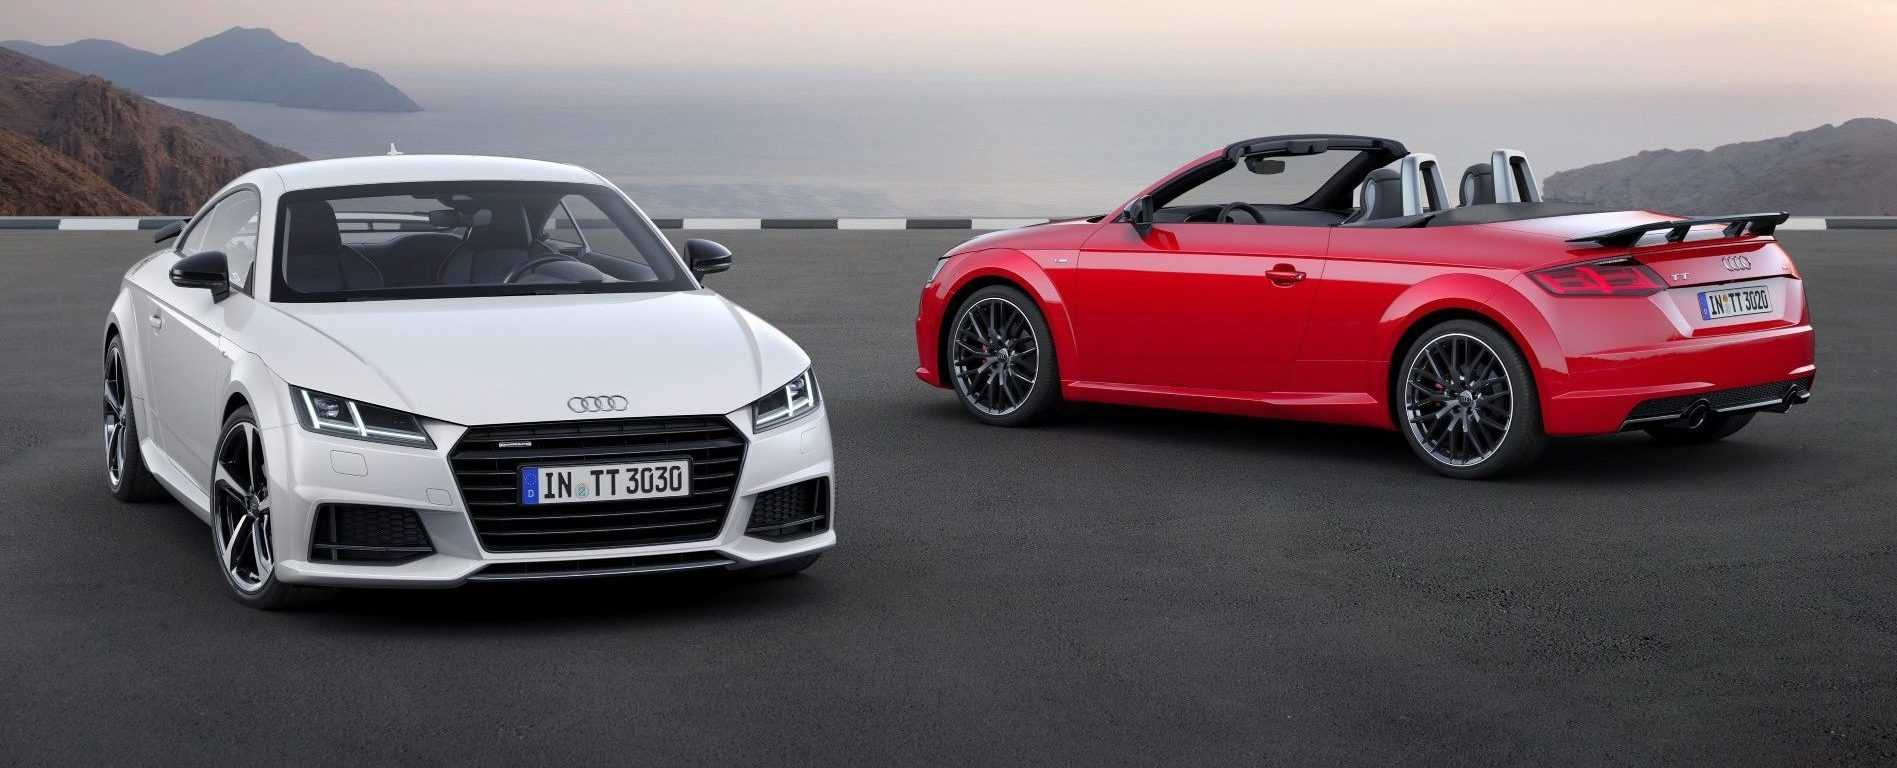 Audi TT Roadster en TT Coupé S line competition 2016